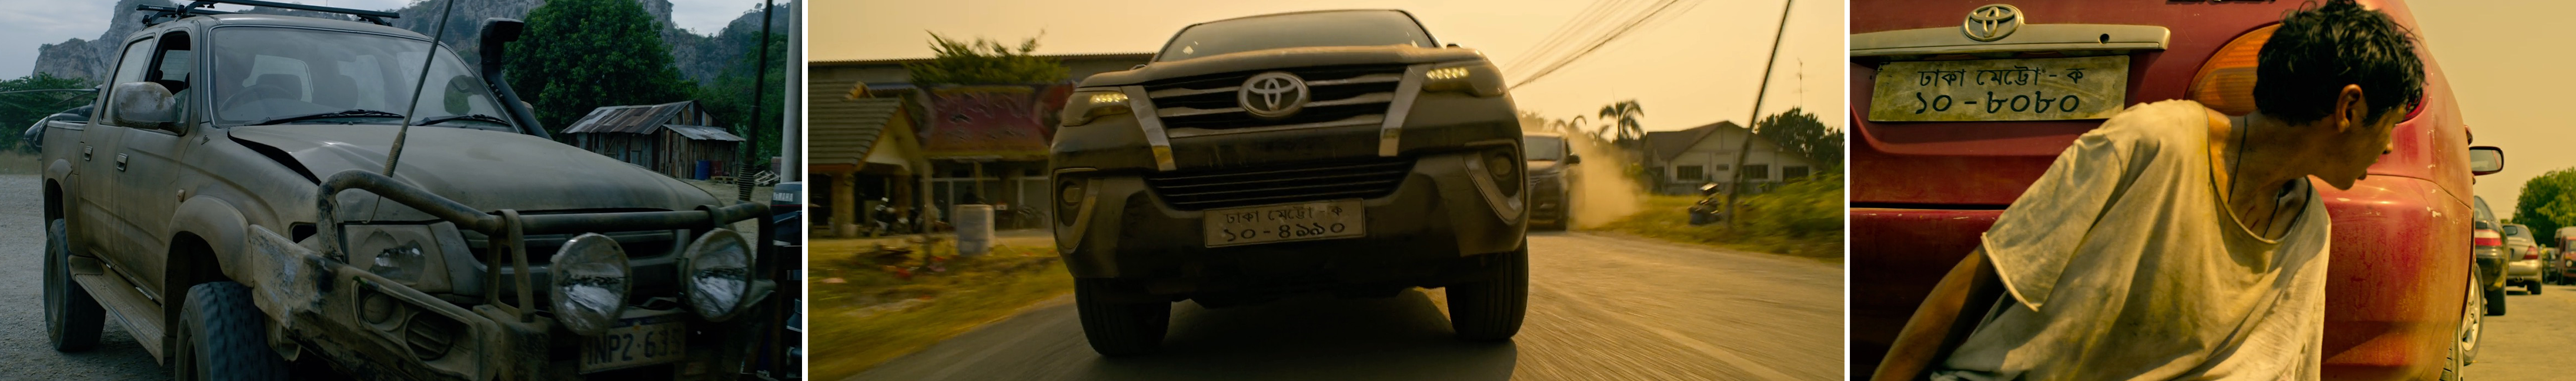 Toyota cars and trucks product placement in Extraction netflix starring Chris Hemsworth